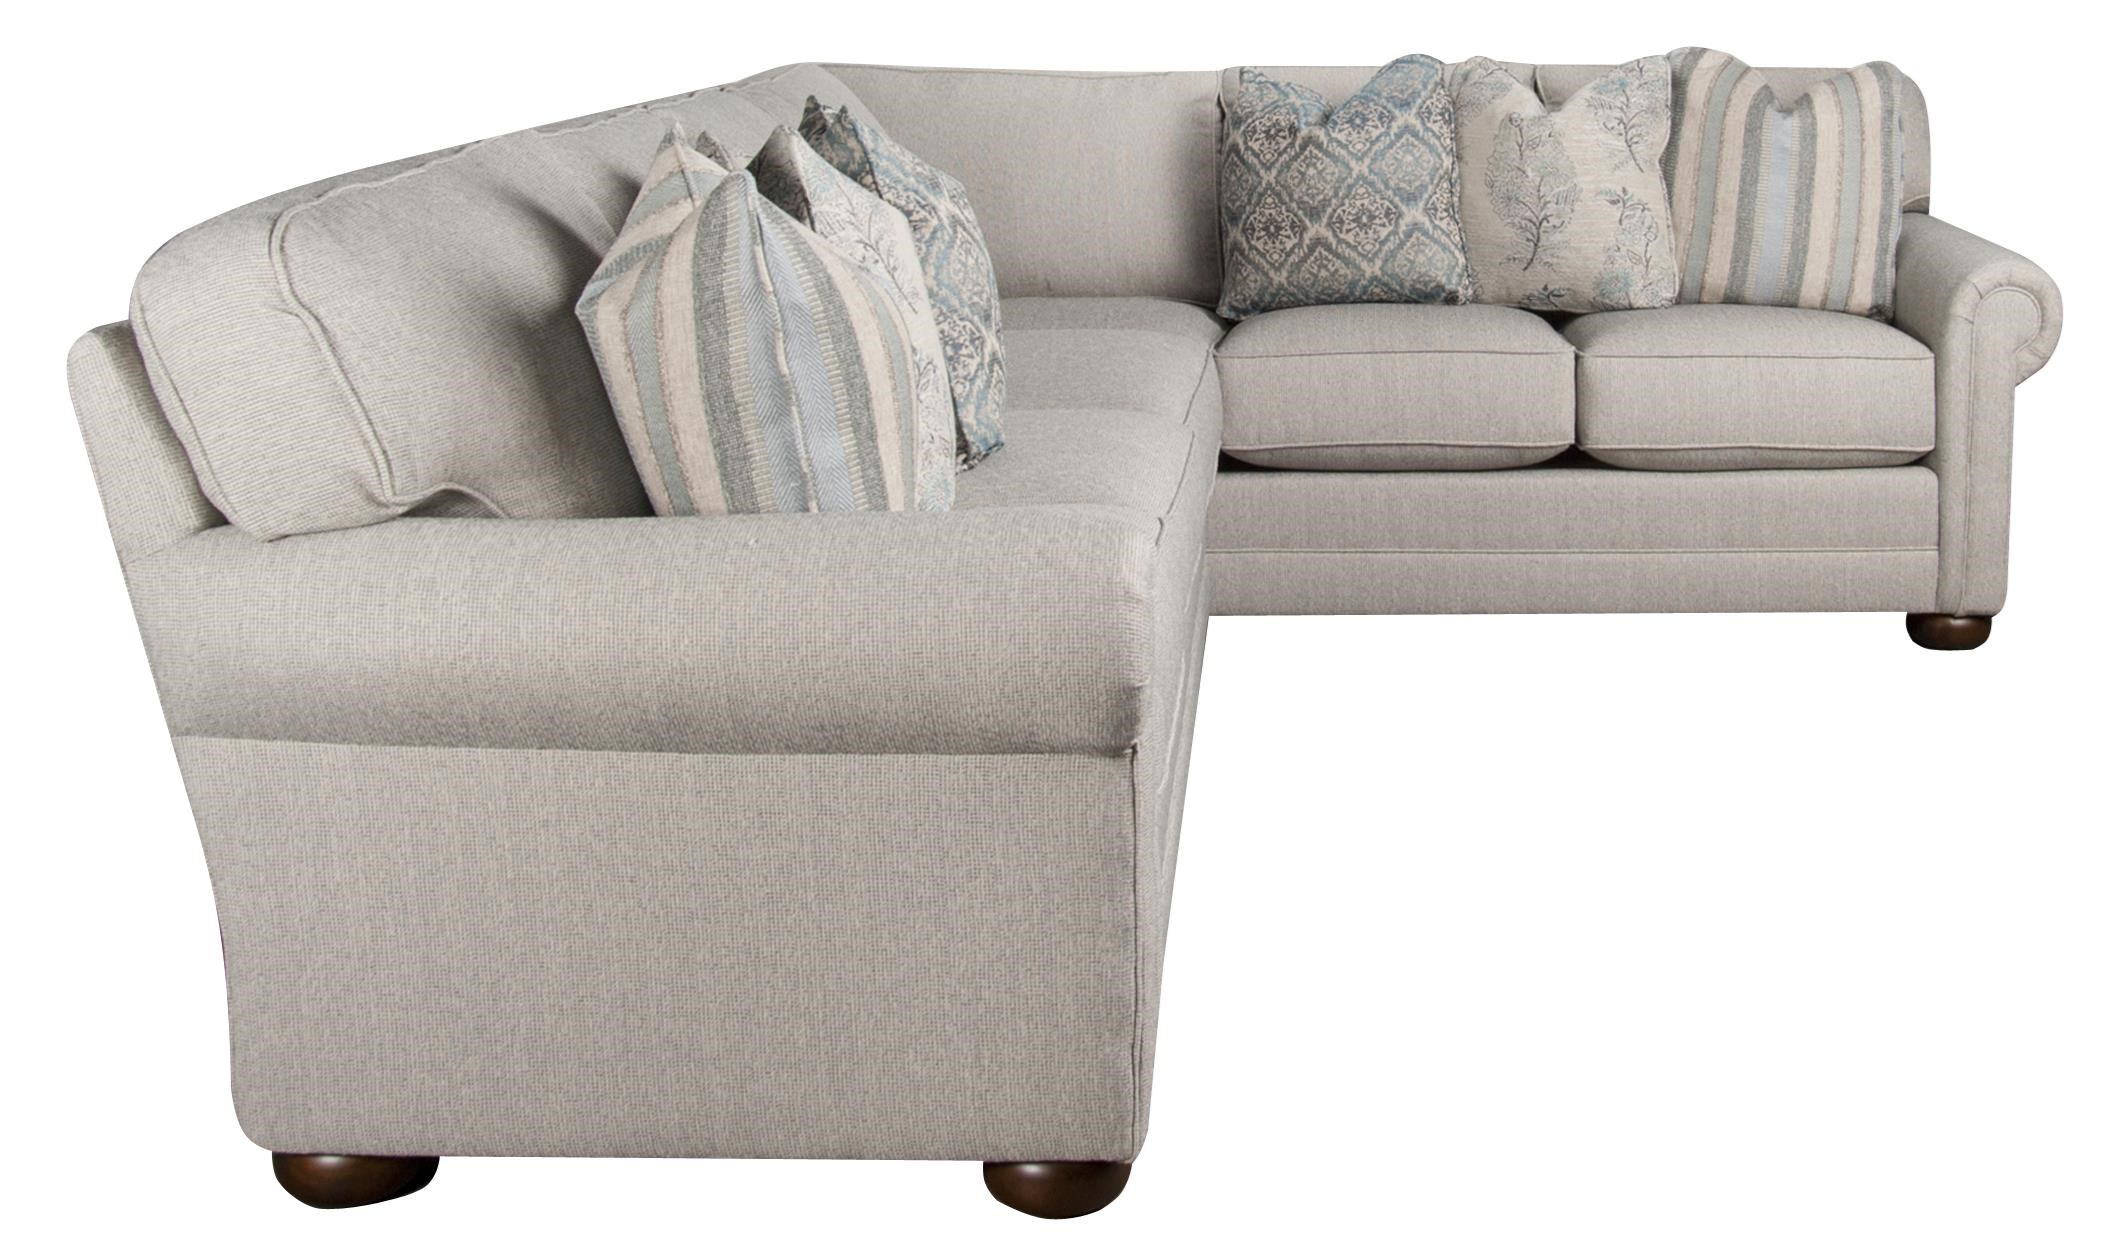 jacqueline sofa wood designs images biltmore sectional with accent pillows